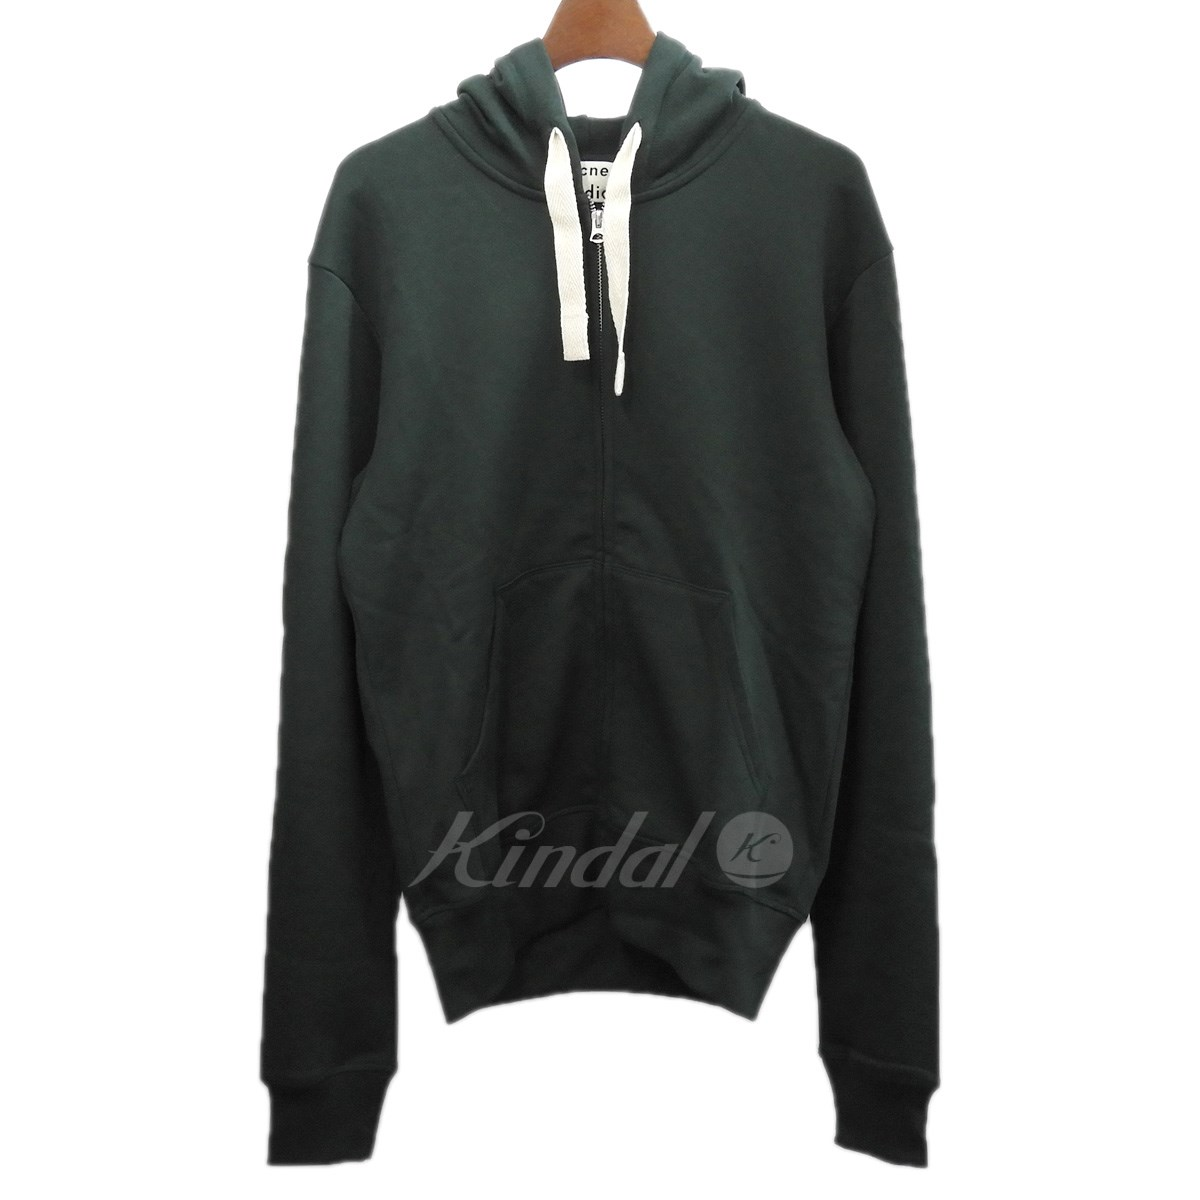 【中古】ACNE STUDIOS 2018AW 「Hooded Sweatshirt」ジップパーカー 【送料無料】 【125023】 【KIND1550】